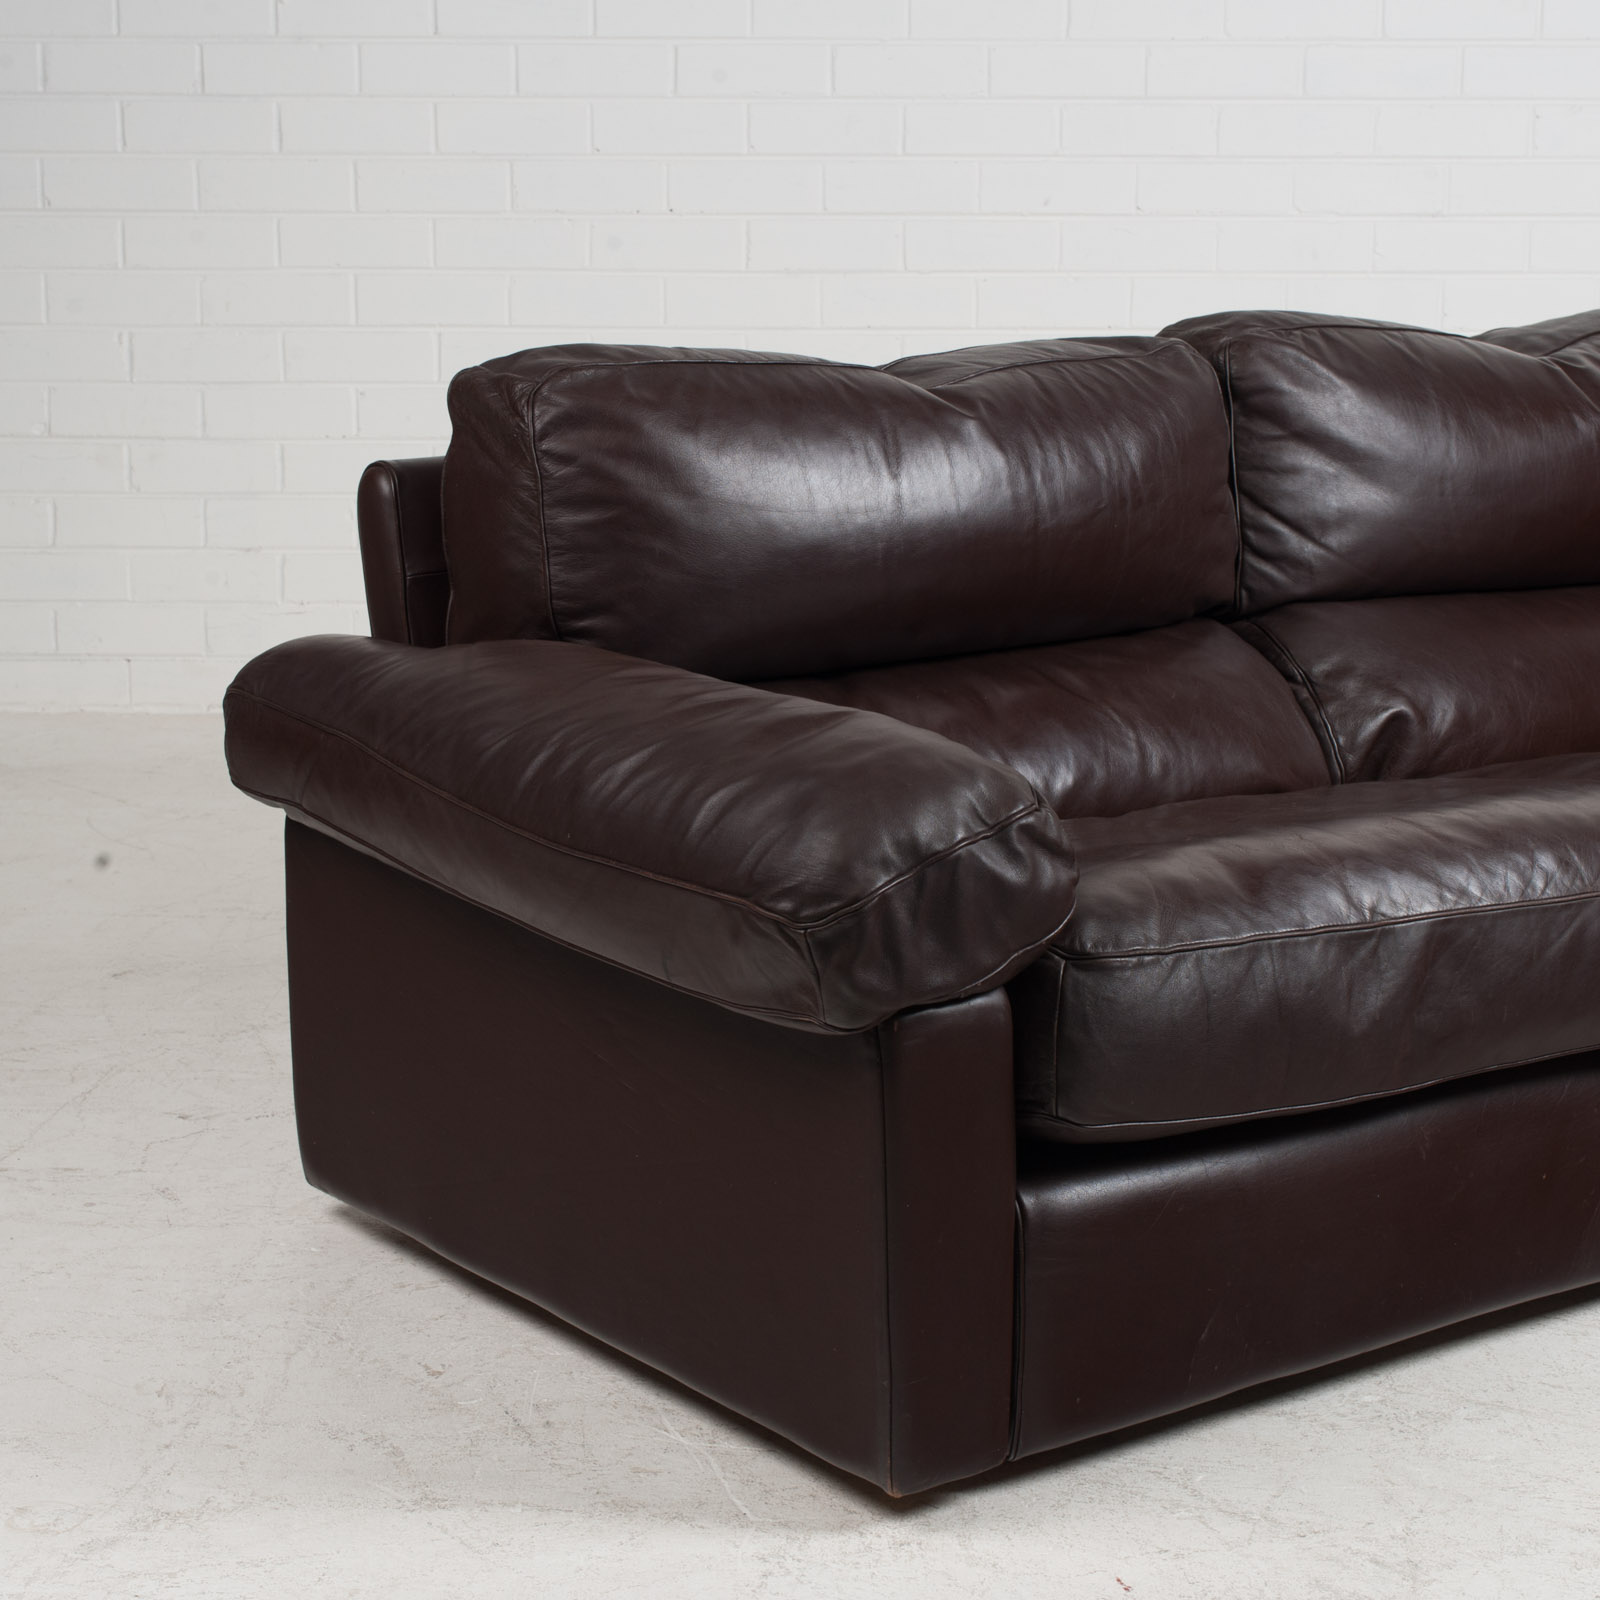 2 Seat Sofa By Tito Agnoli For Poltrona Frau In Chocolate Leather 1970s Italy 04